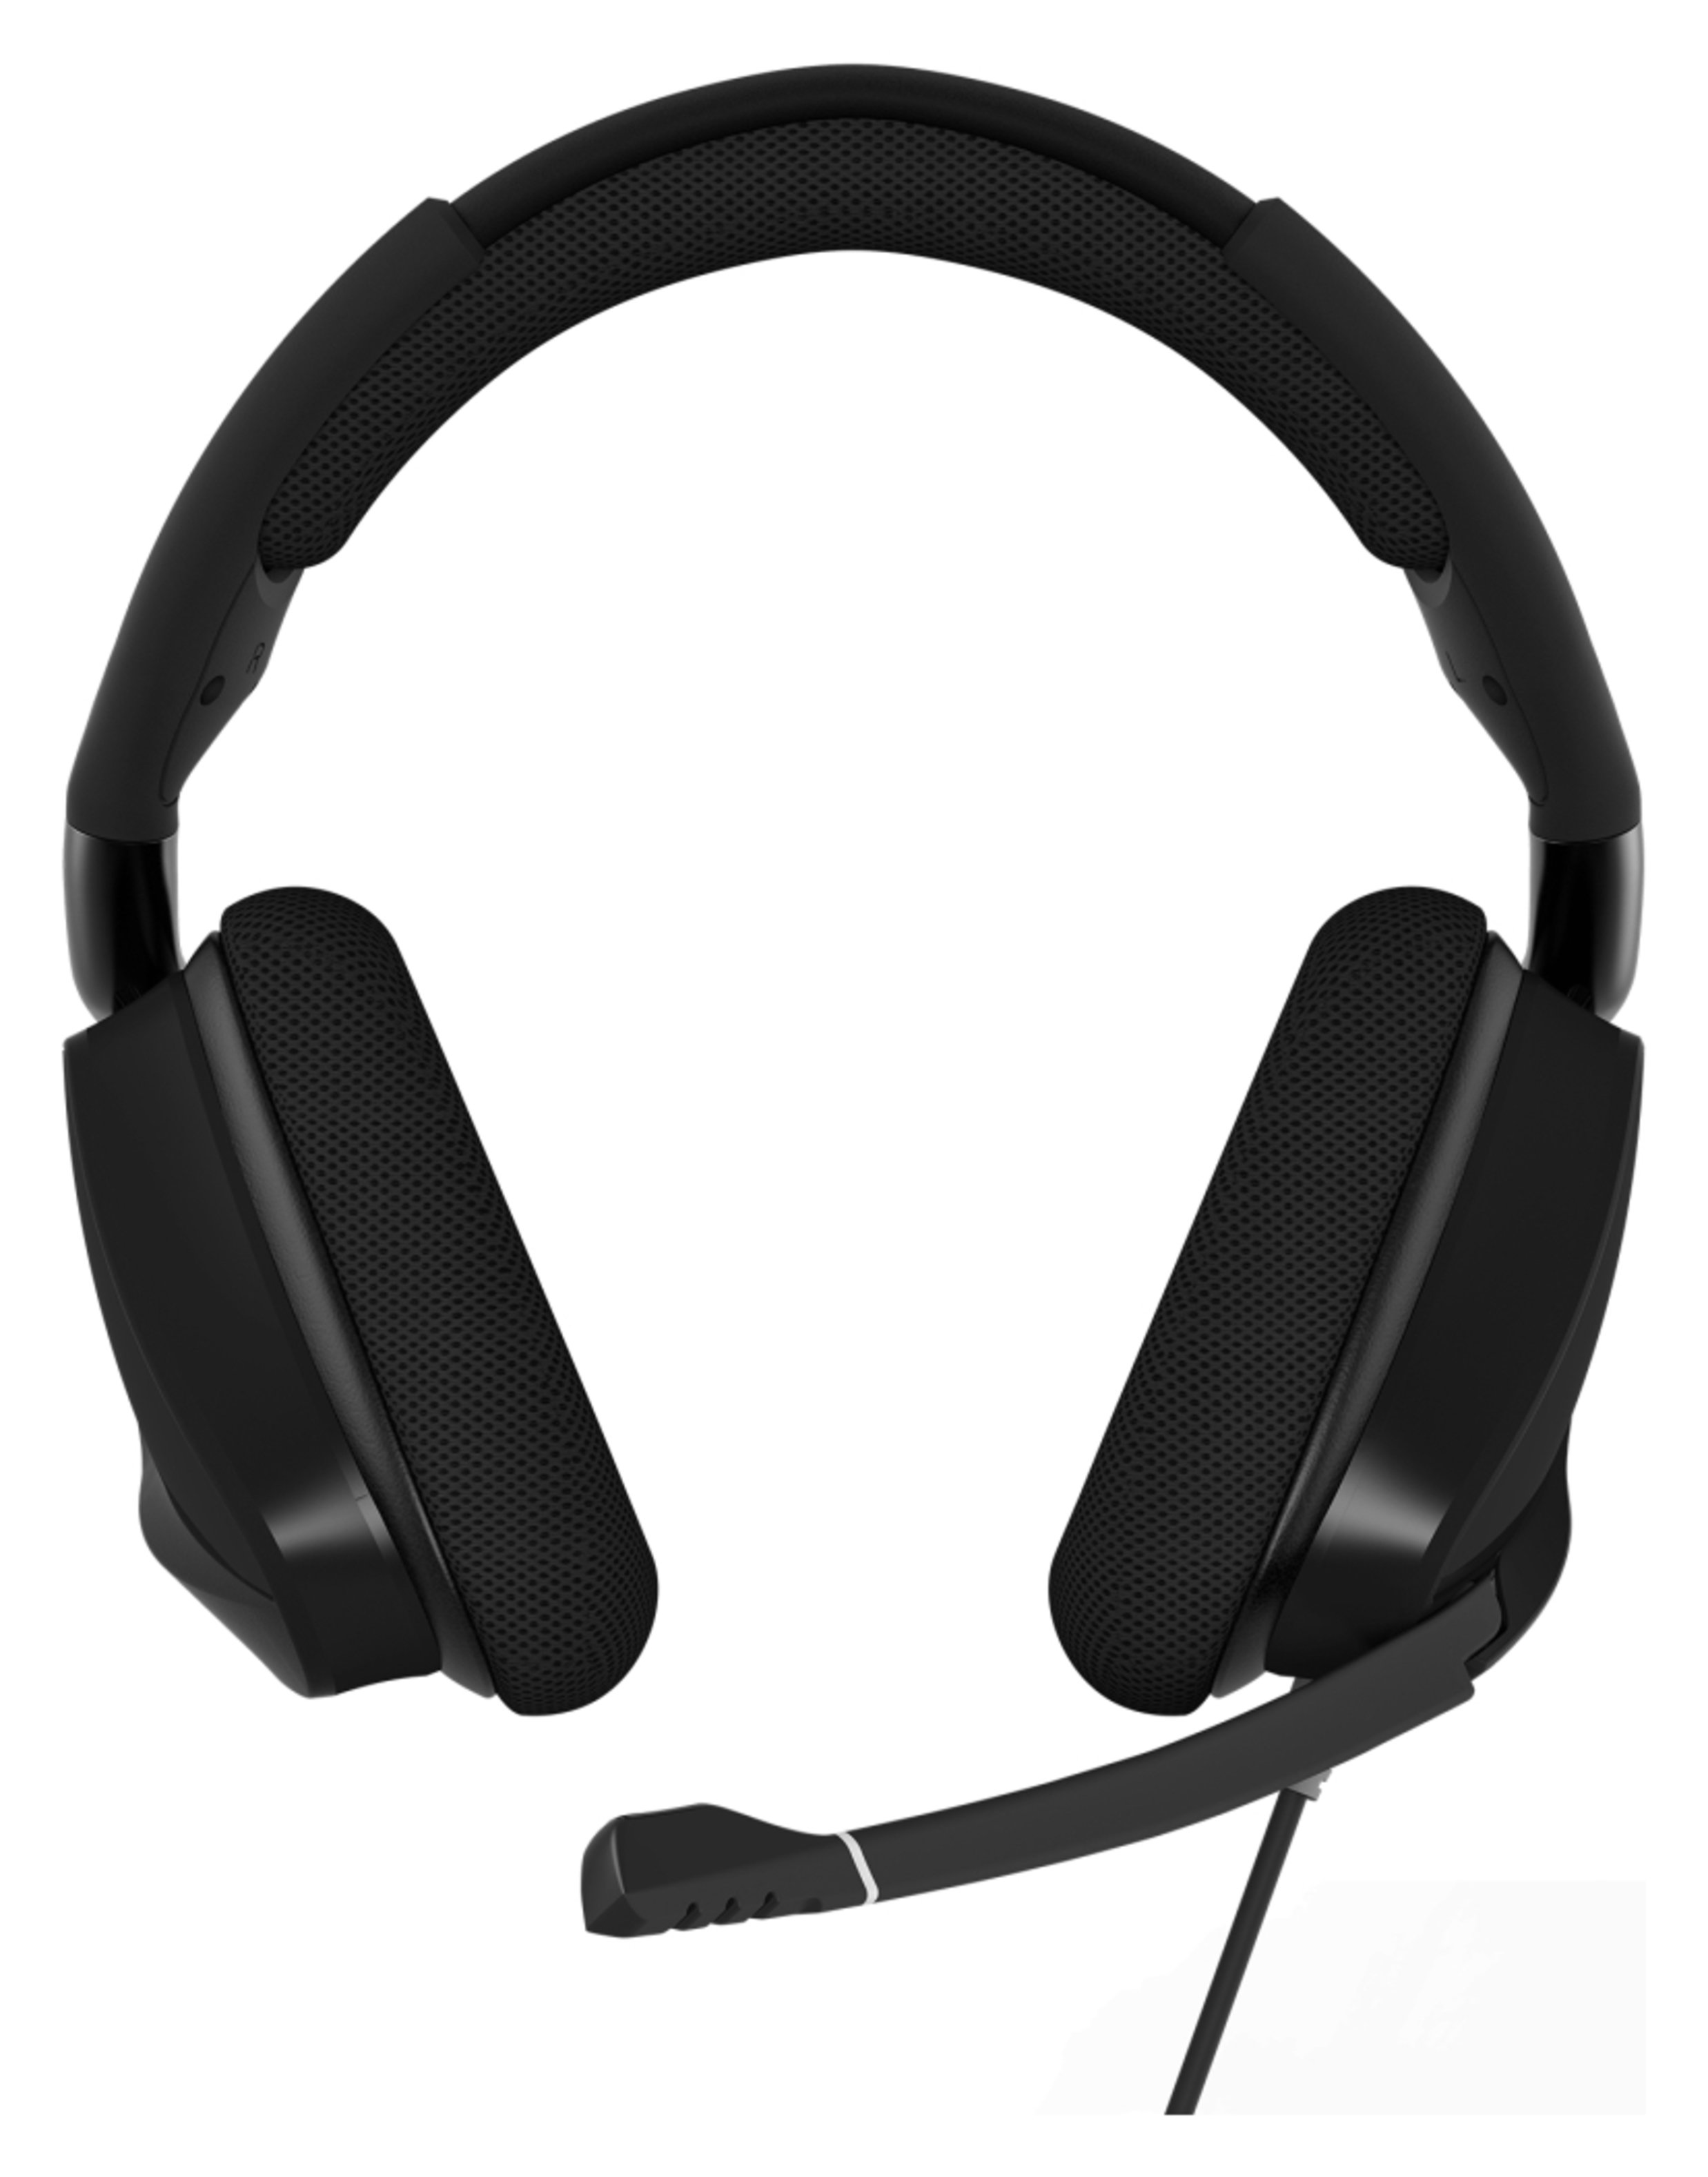 Image of Corsair Void Pro USB Dolby 7.1 Gaming Headset PC - Black